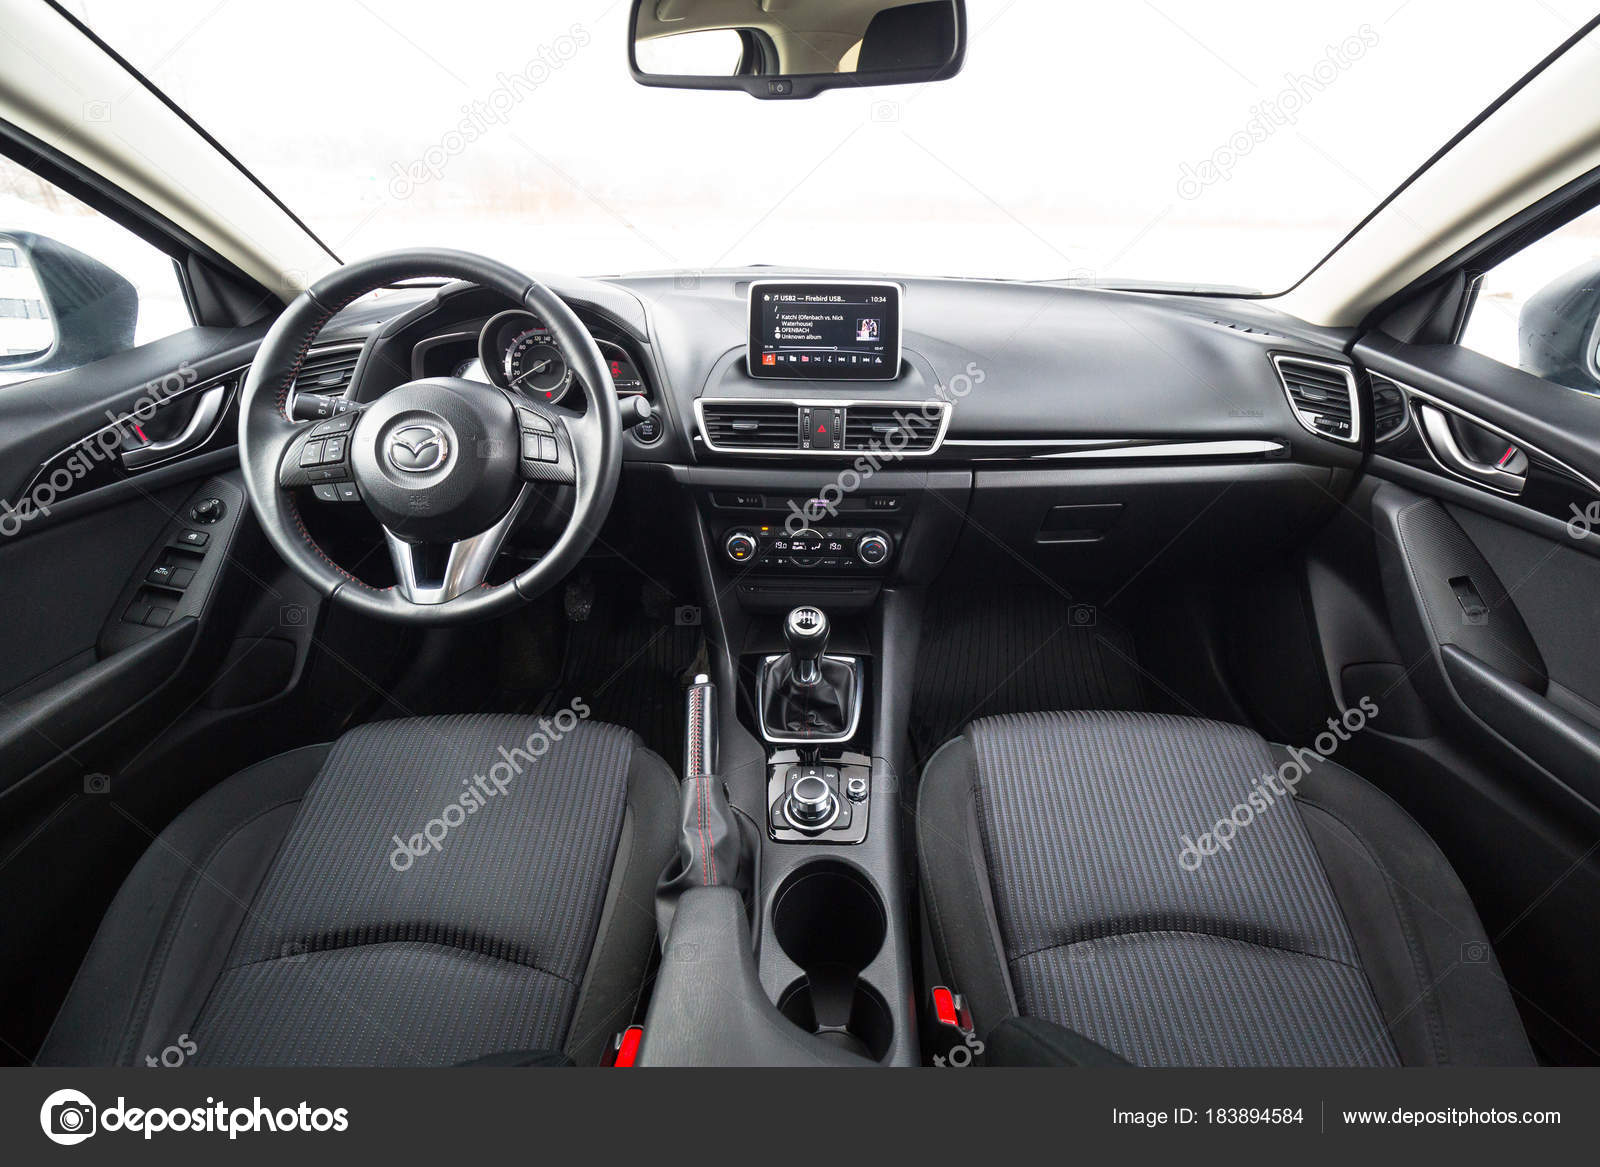 poland february 11 2018 black interior of mazda 3 captured in winter time mazda 3 is a popular compact car manufactured in japan by the mazda motor